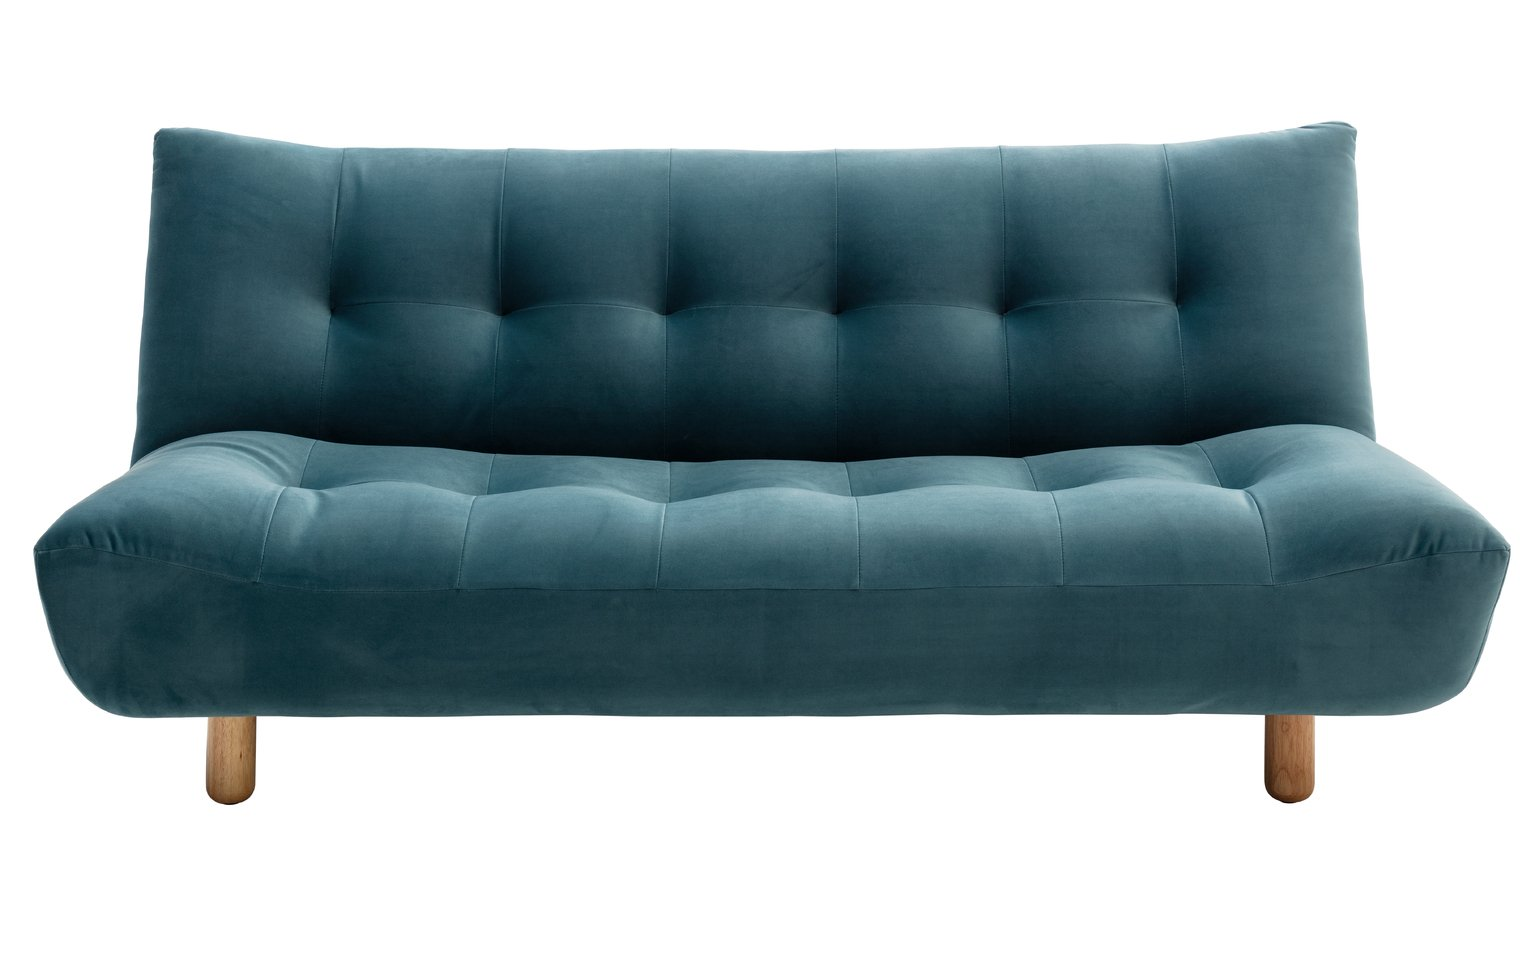 Habitat Kota 3 Seater Fabric Sofa Bed - Teal